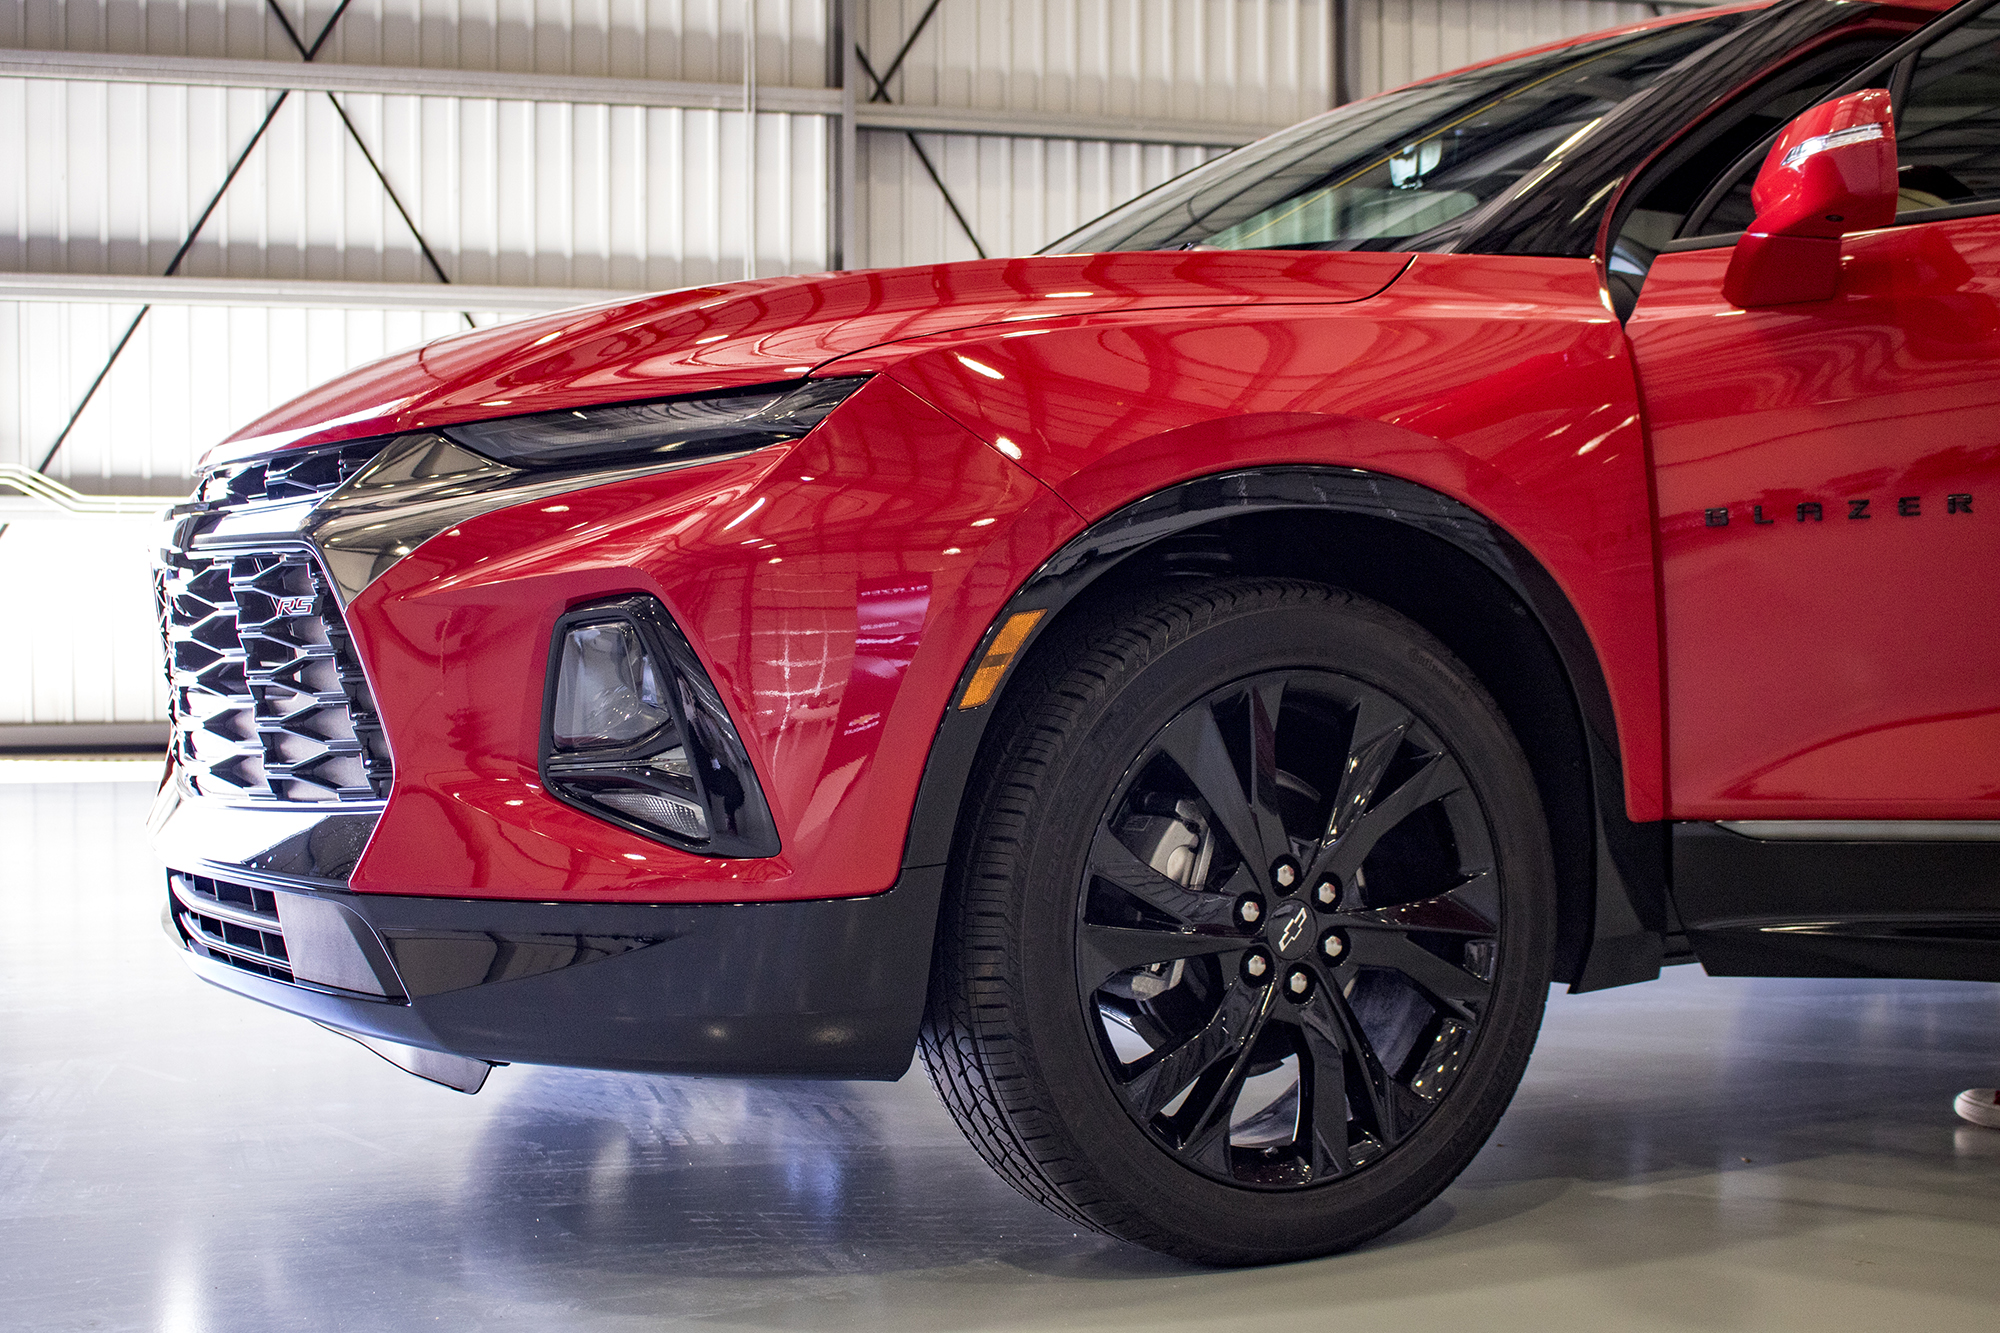 2019 Chevrolet Blazer First Drive Review: A Crossover